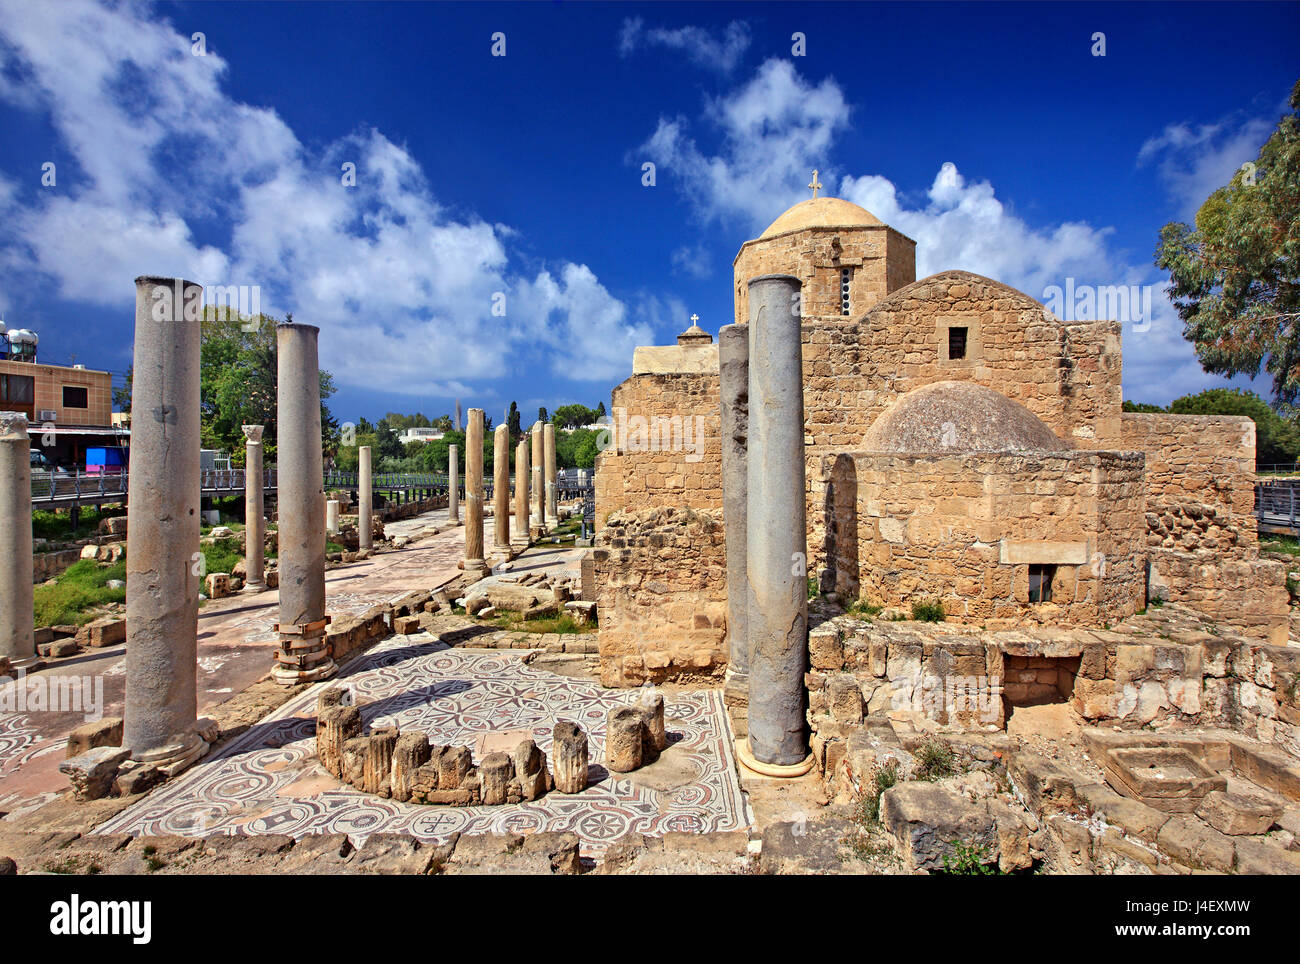 The church of Agia Kyriaki ) surrounded by the ruins of the Early Christian Basilica of Panagia Chrysopolitissa - Stock Image